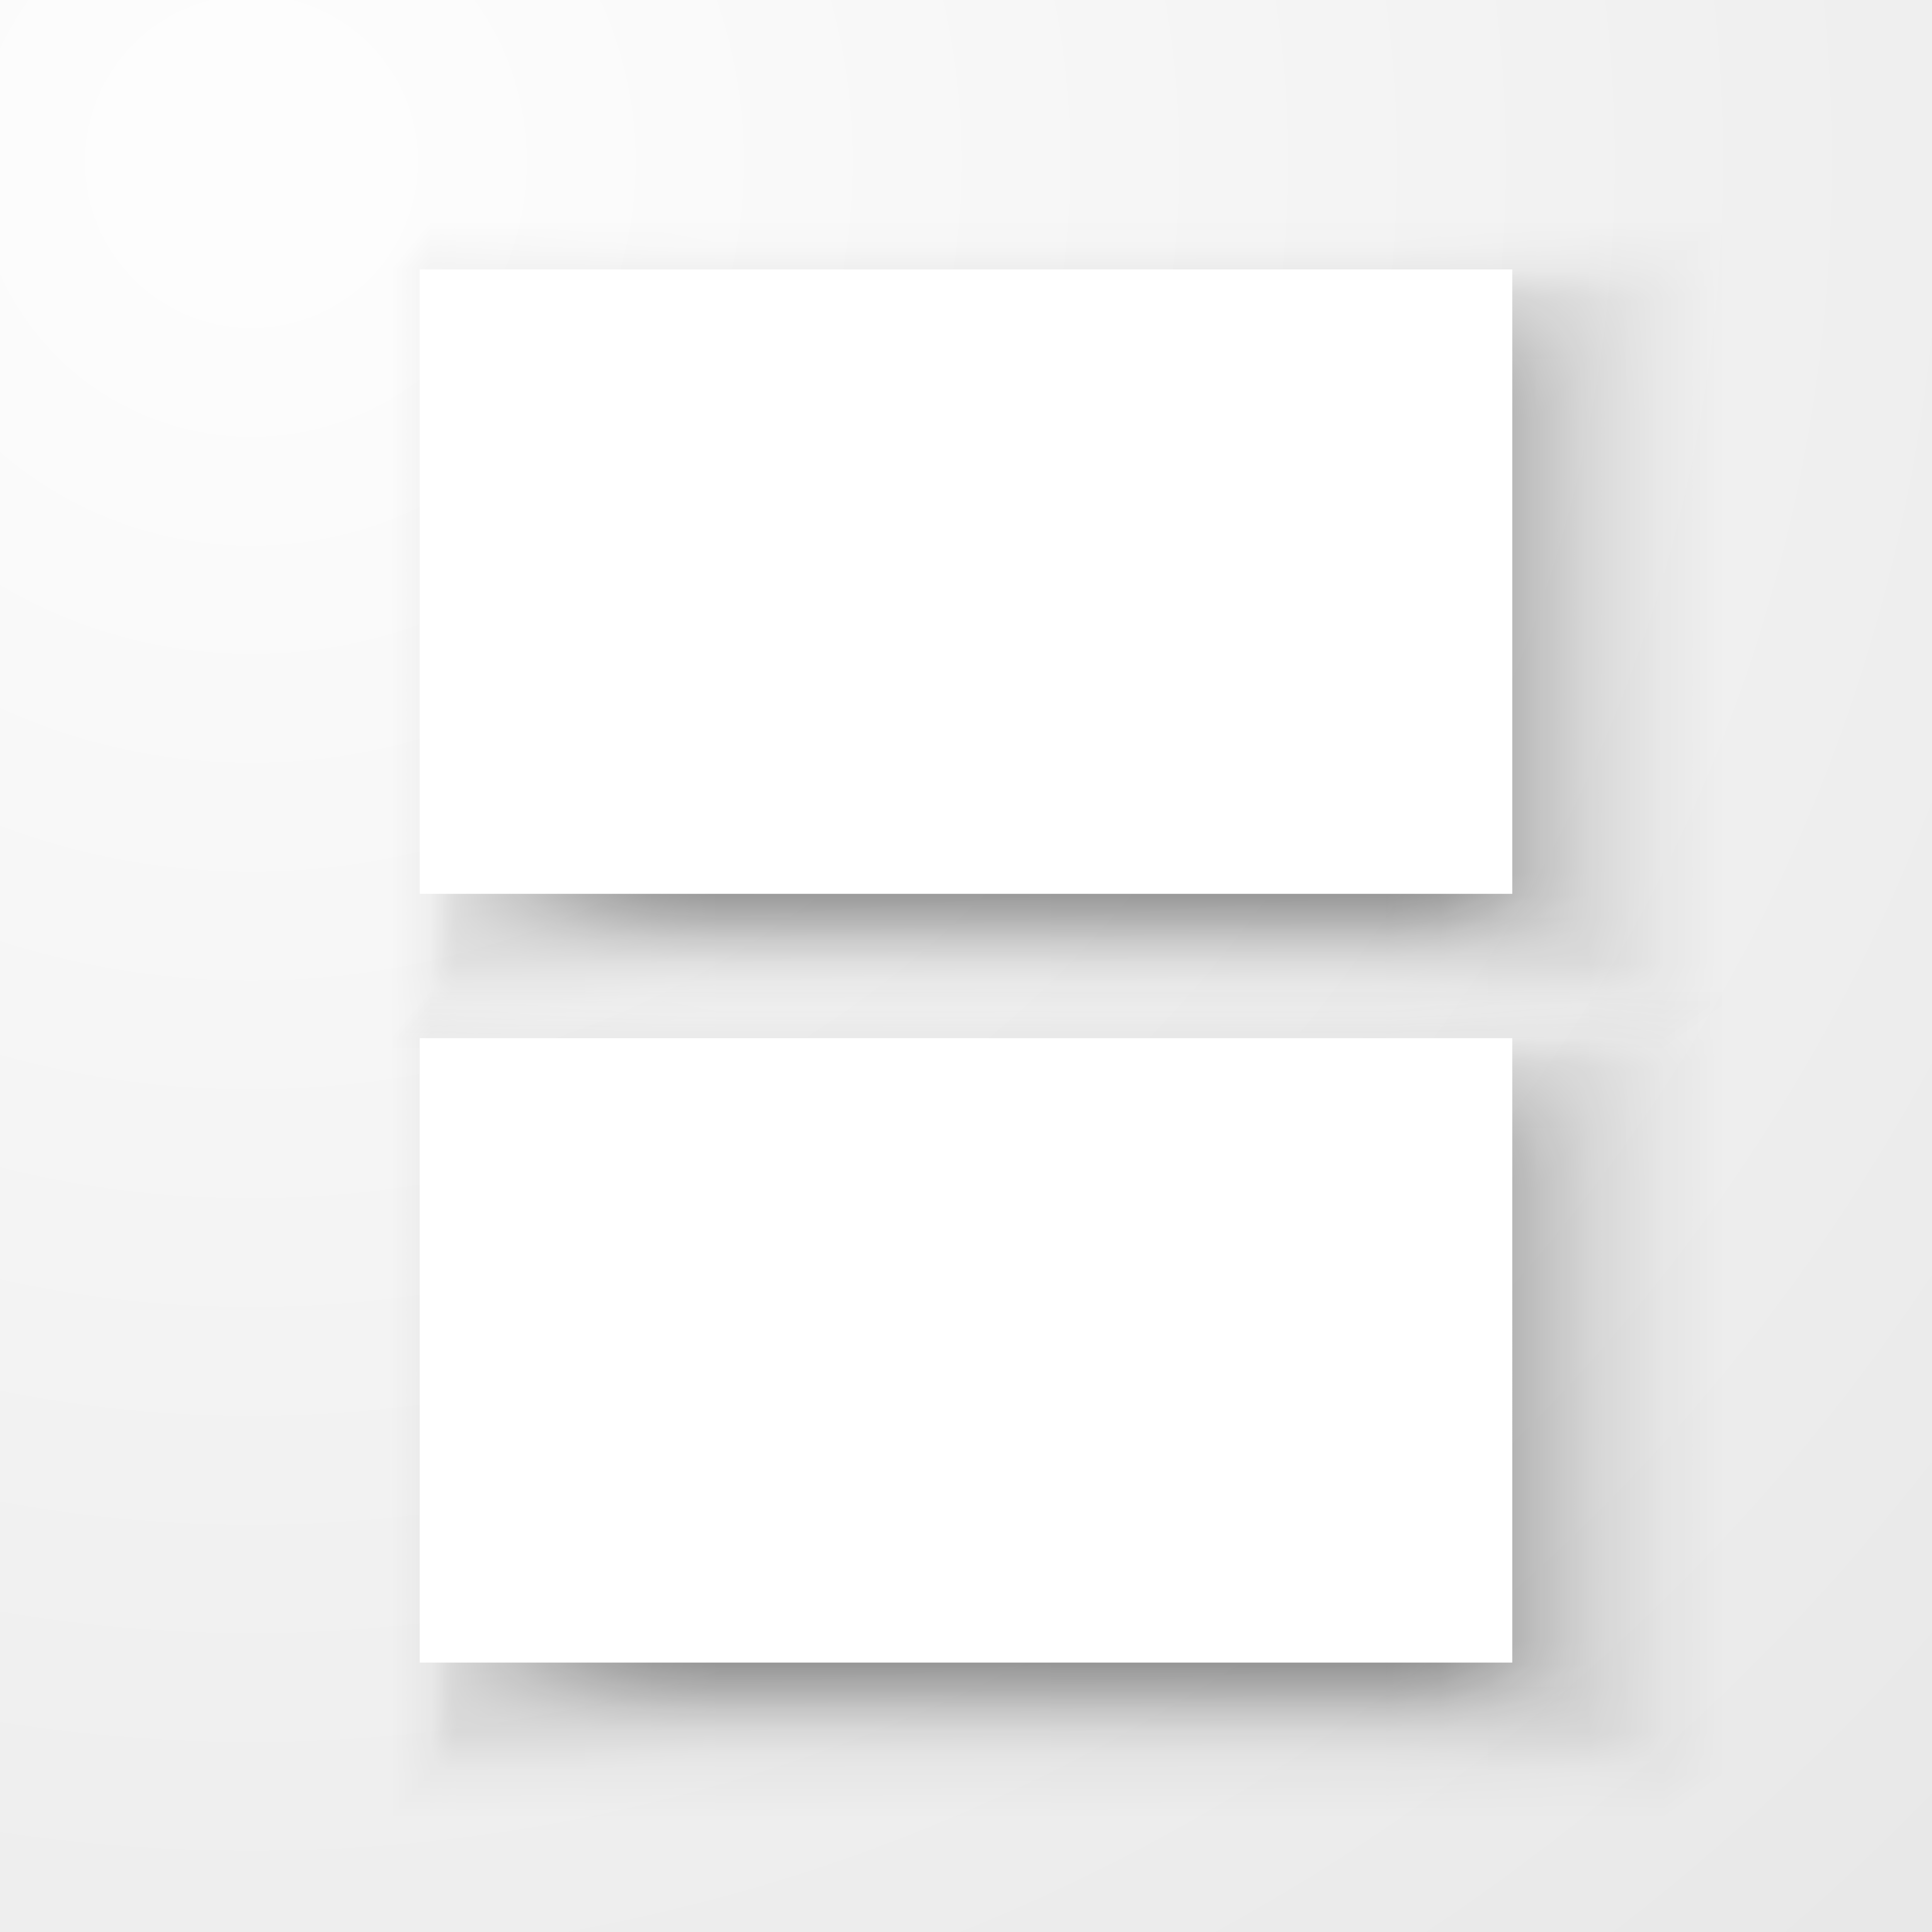 blank business card mockup template created by vector